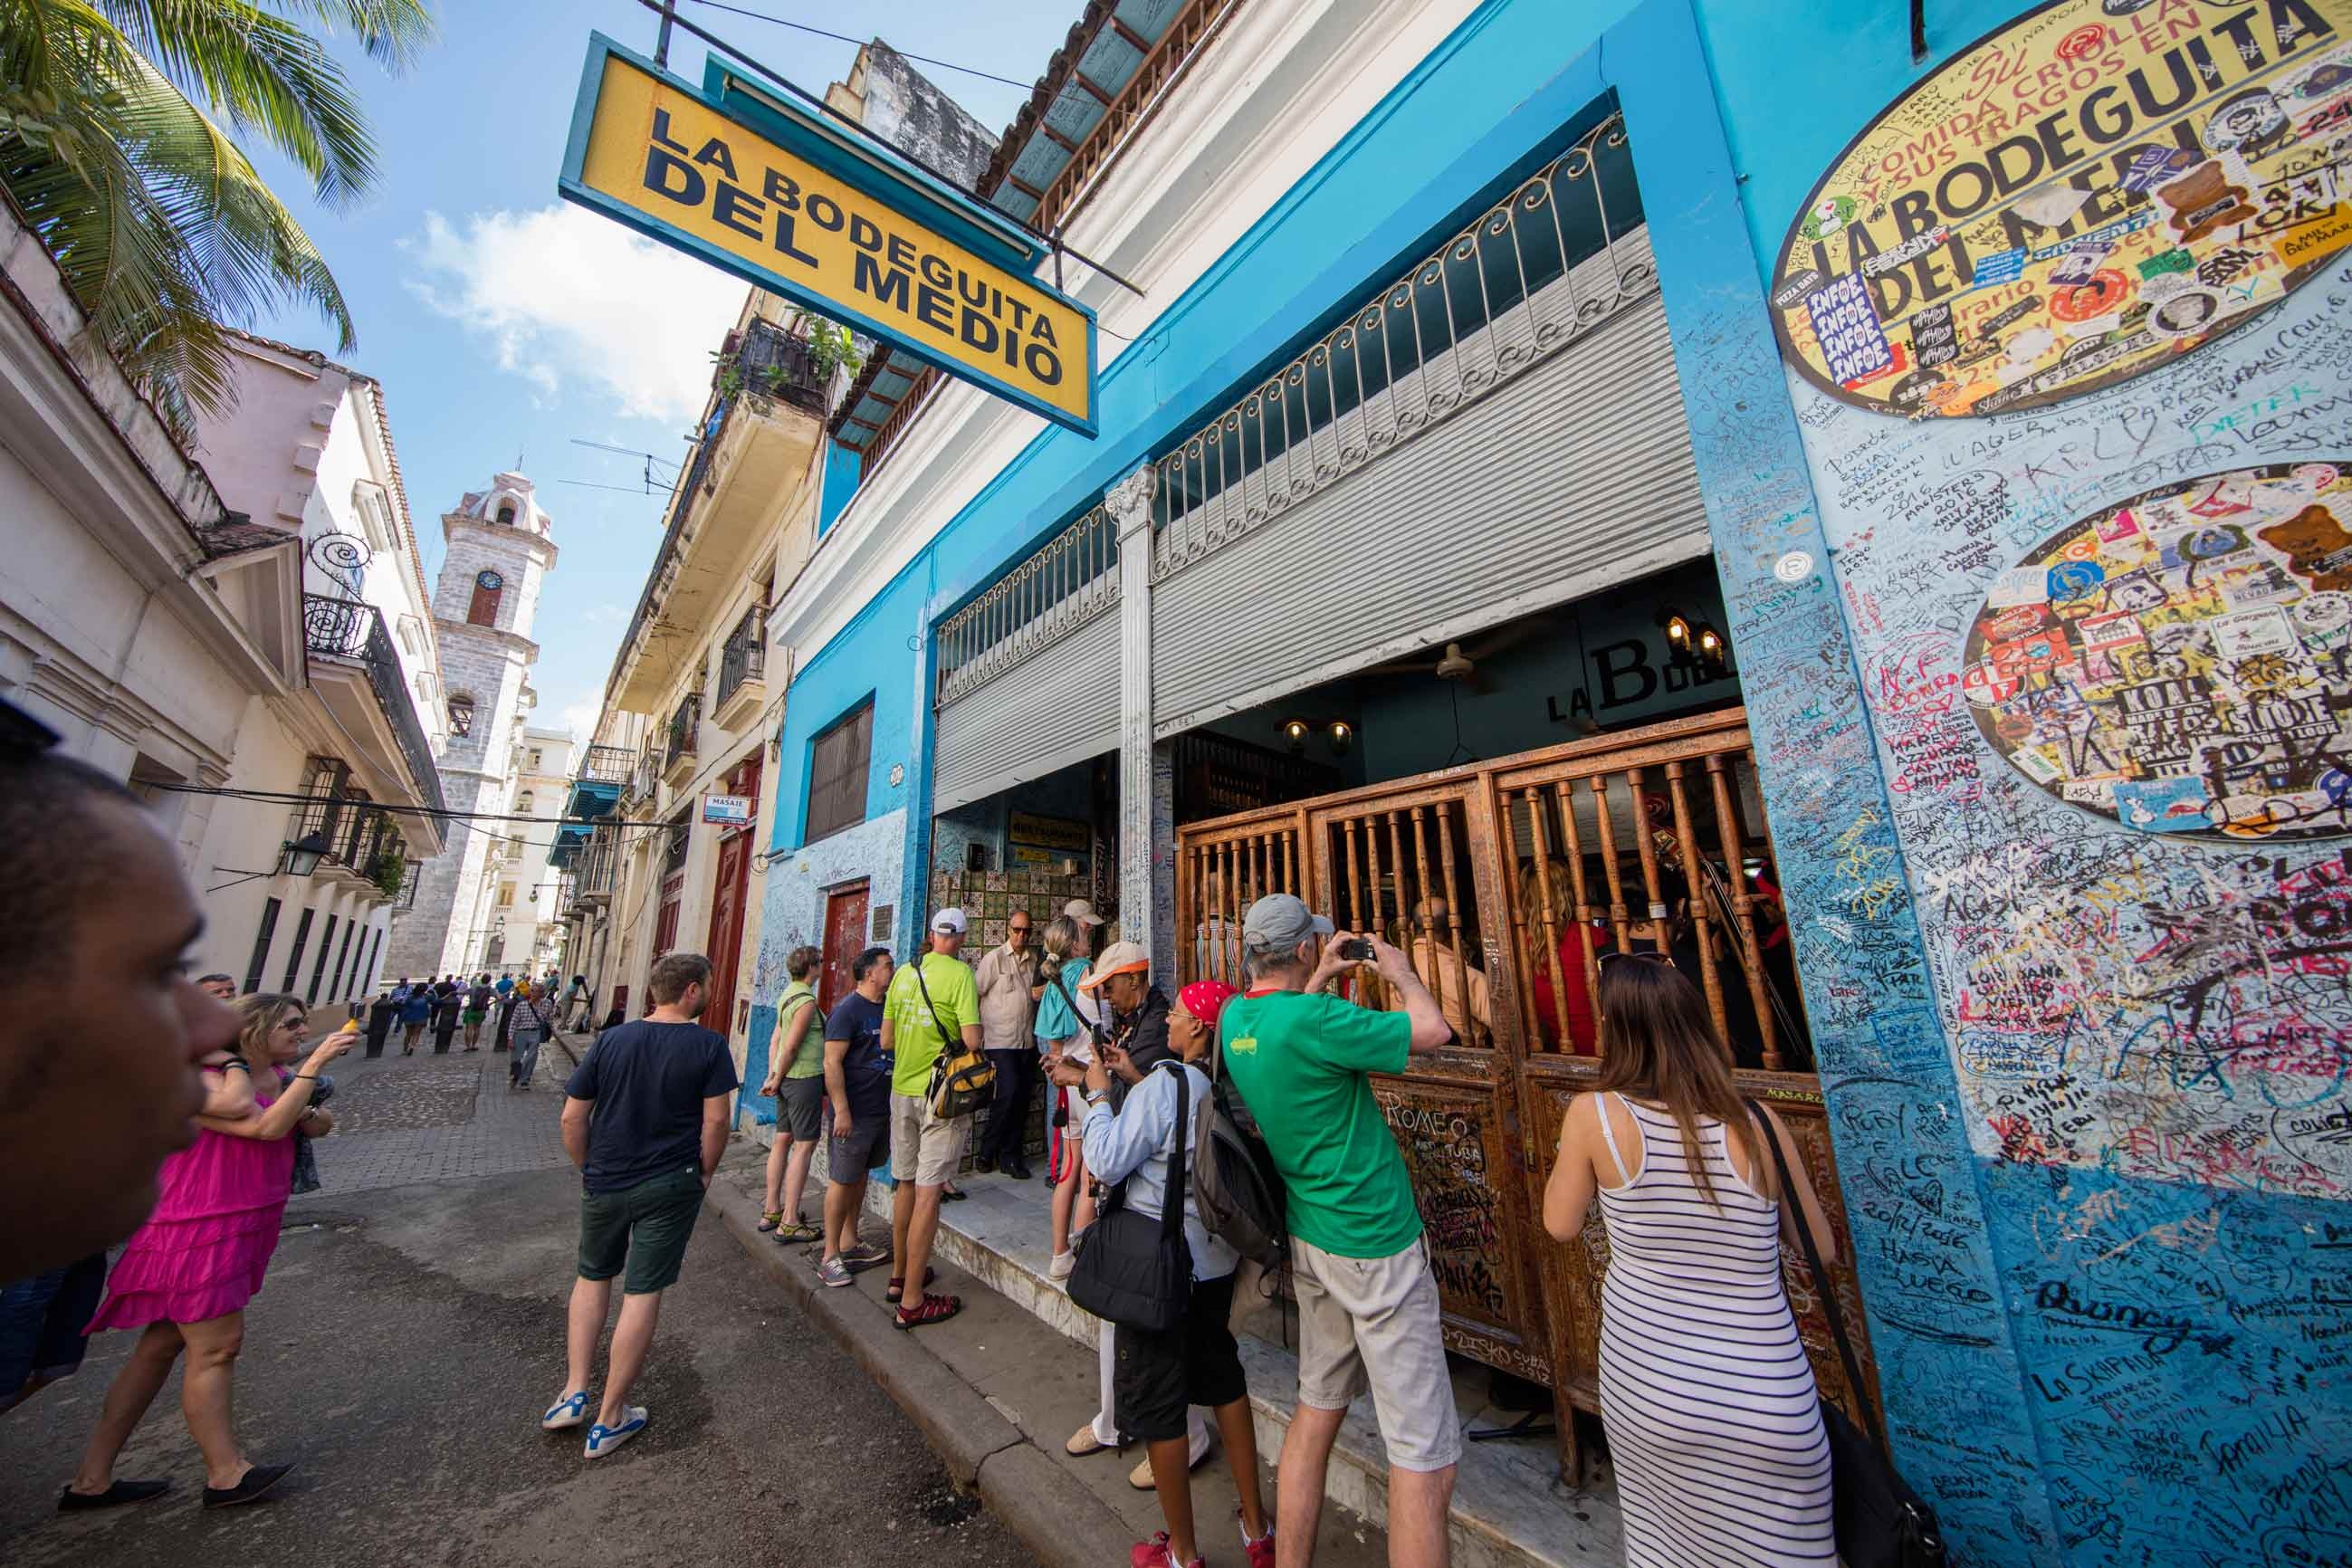 Following Hemingway's steps at Havana